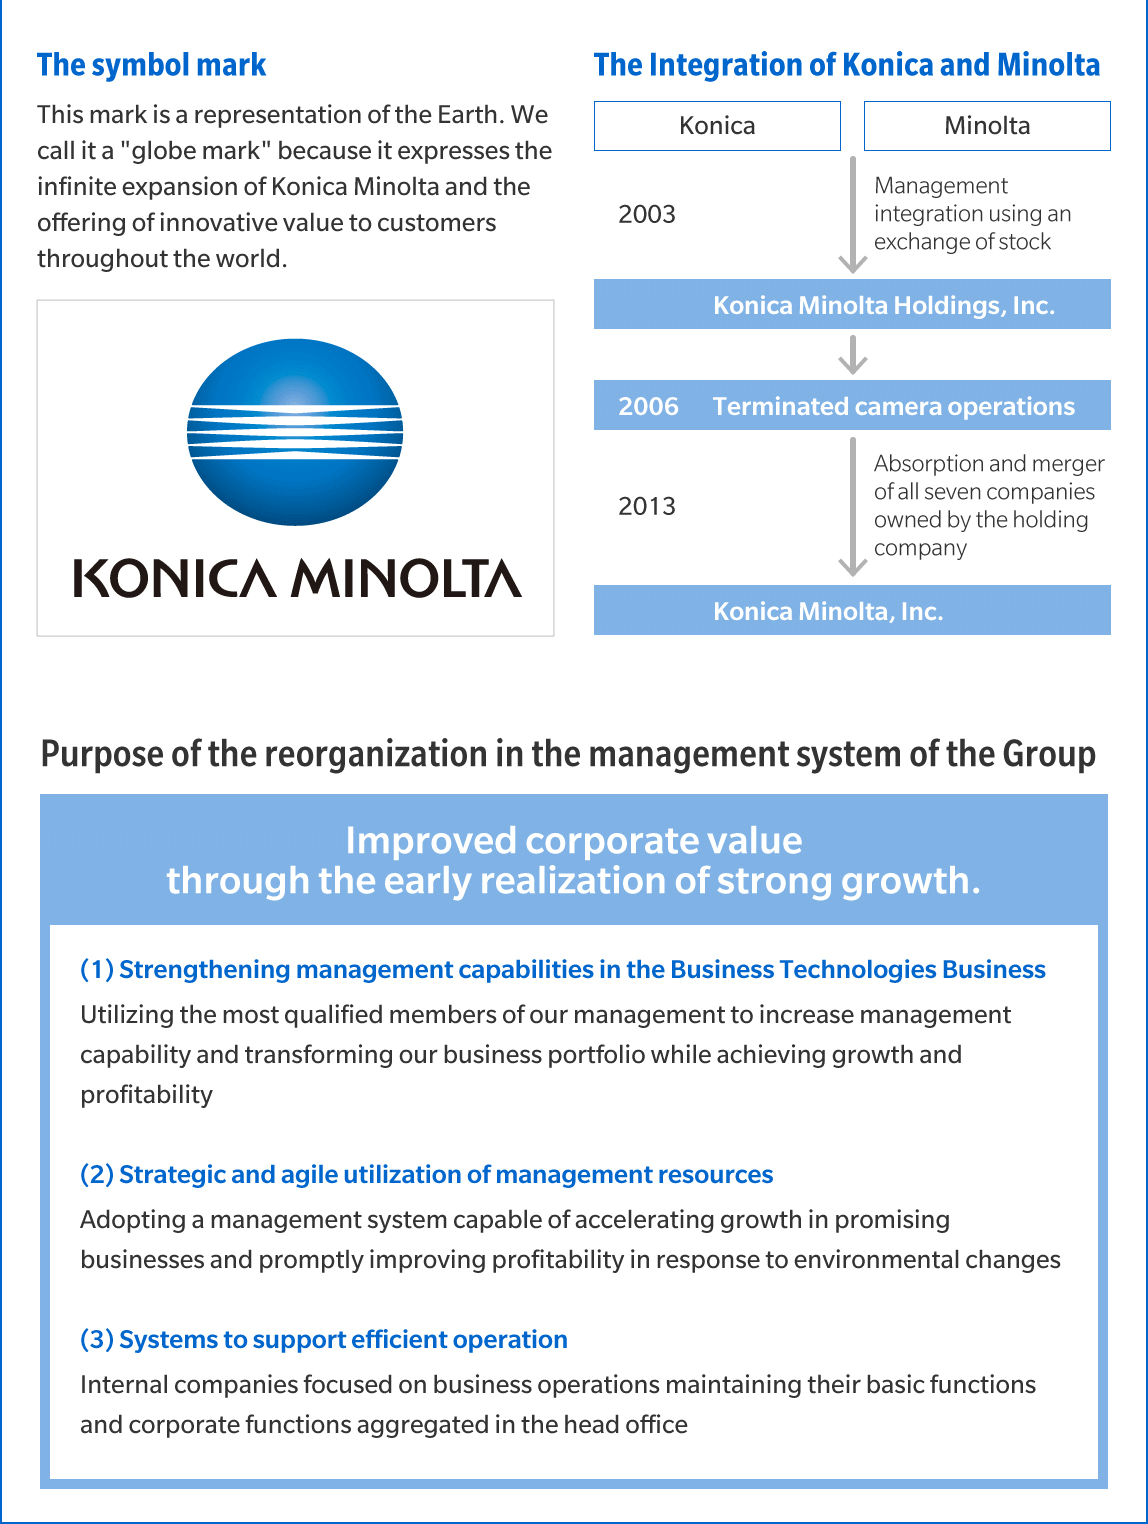 The symbol mark and The Integration of konica Minolta